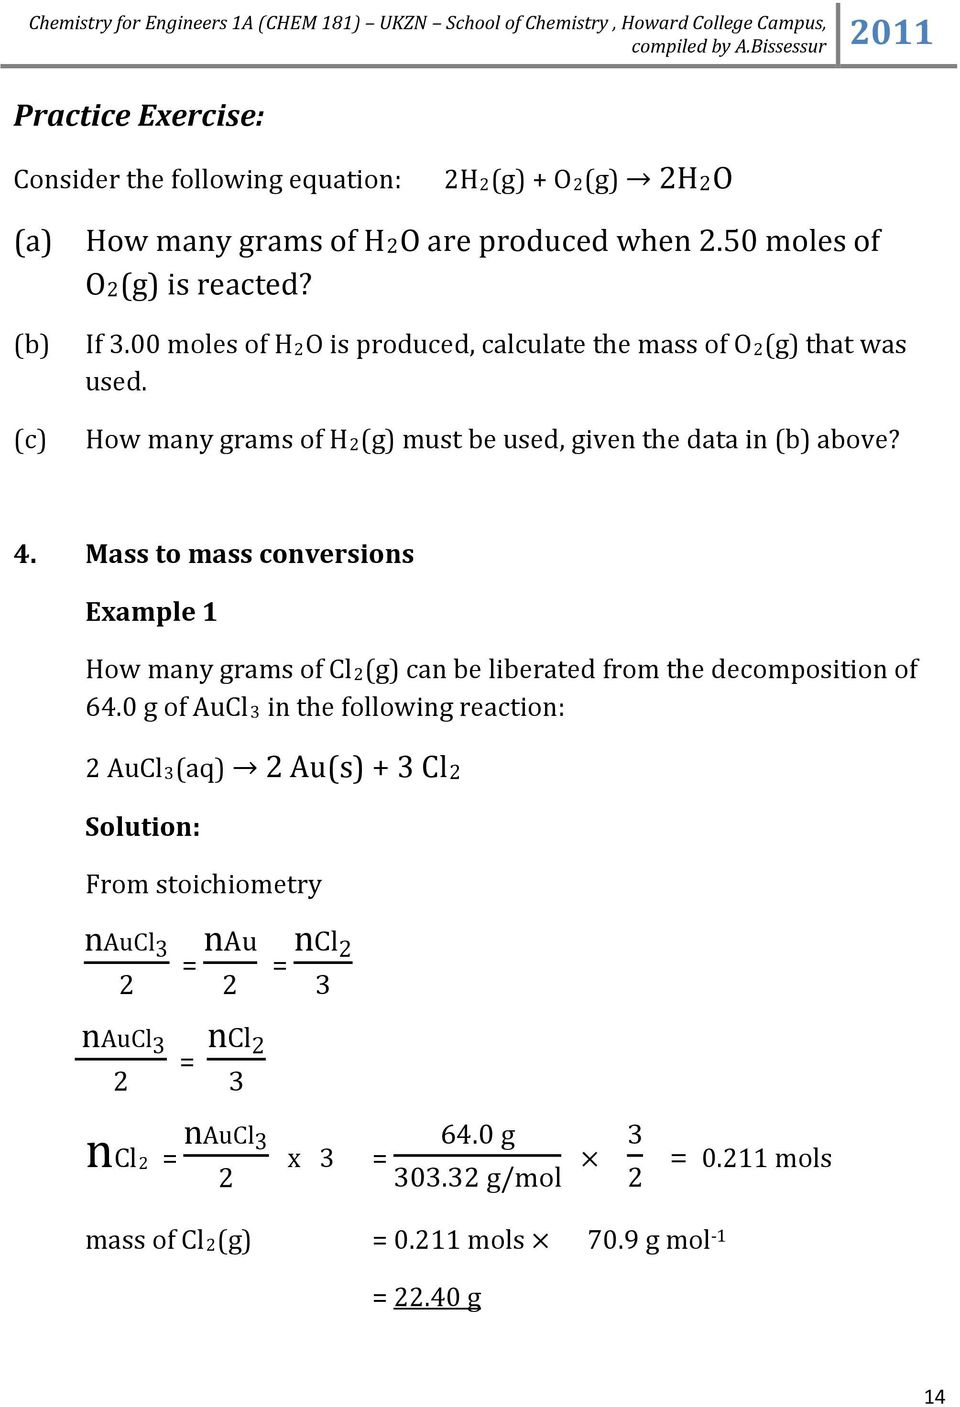 Mass to mass conversions Example 1 How many grams of Cl(g) can be liberated from the decomposition of 64.